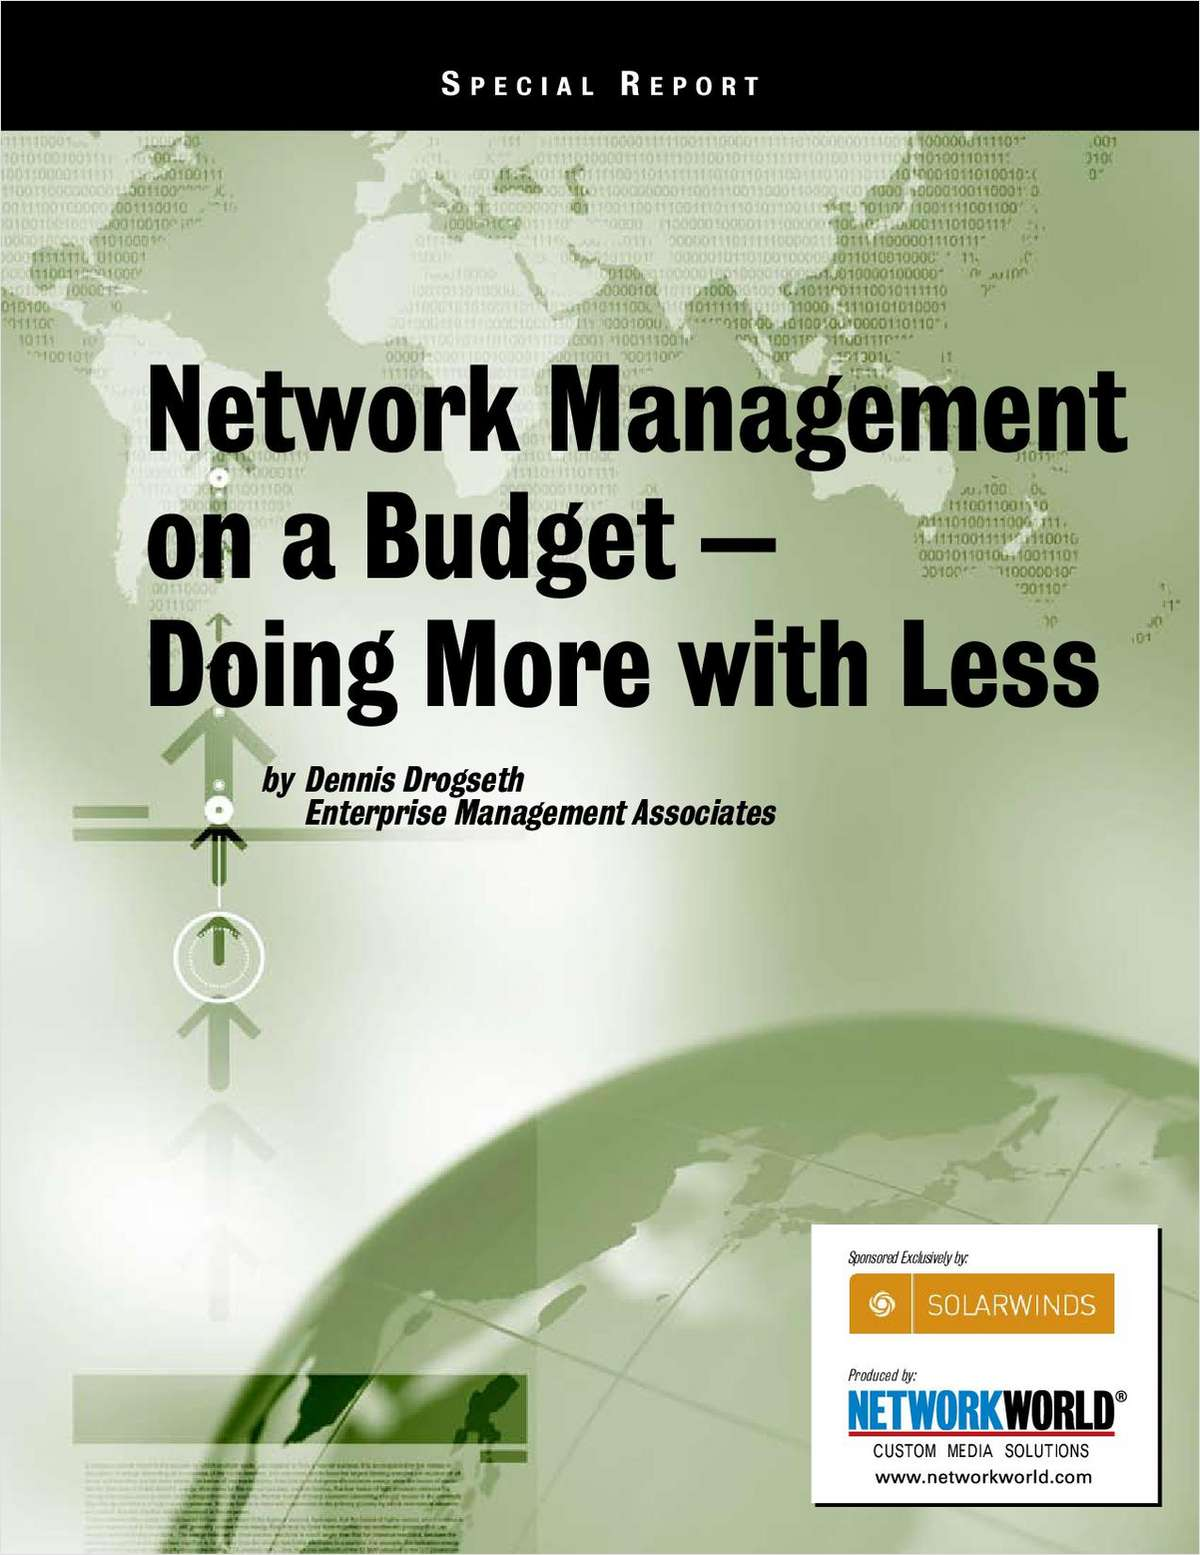 Network Management on a Budget - Doing More With Less